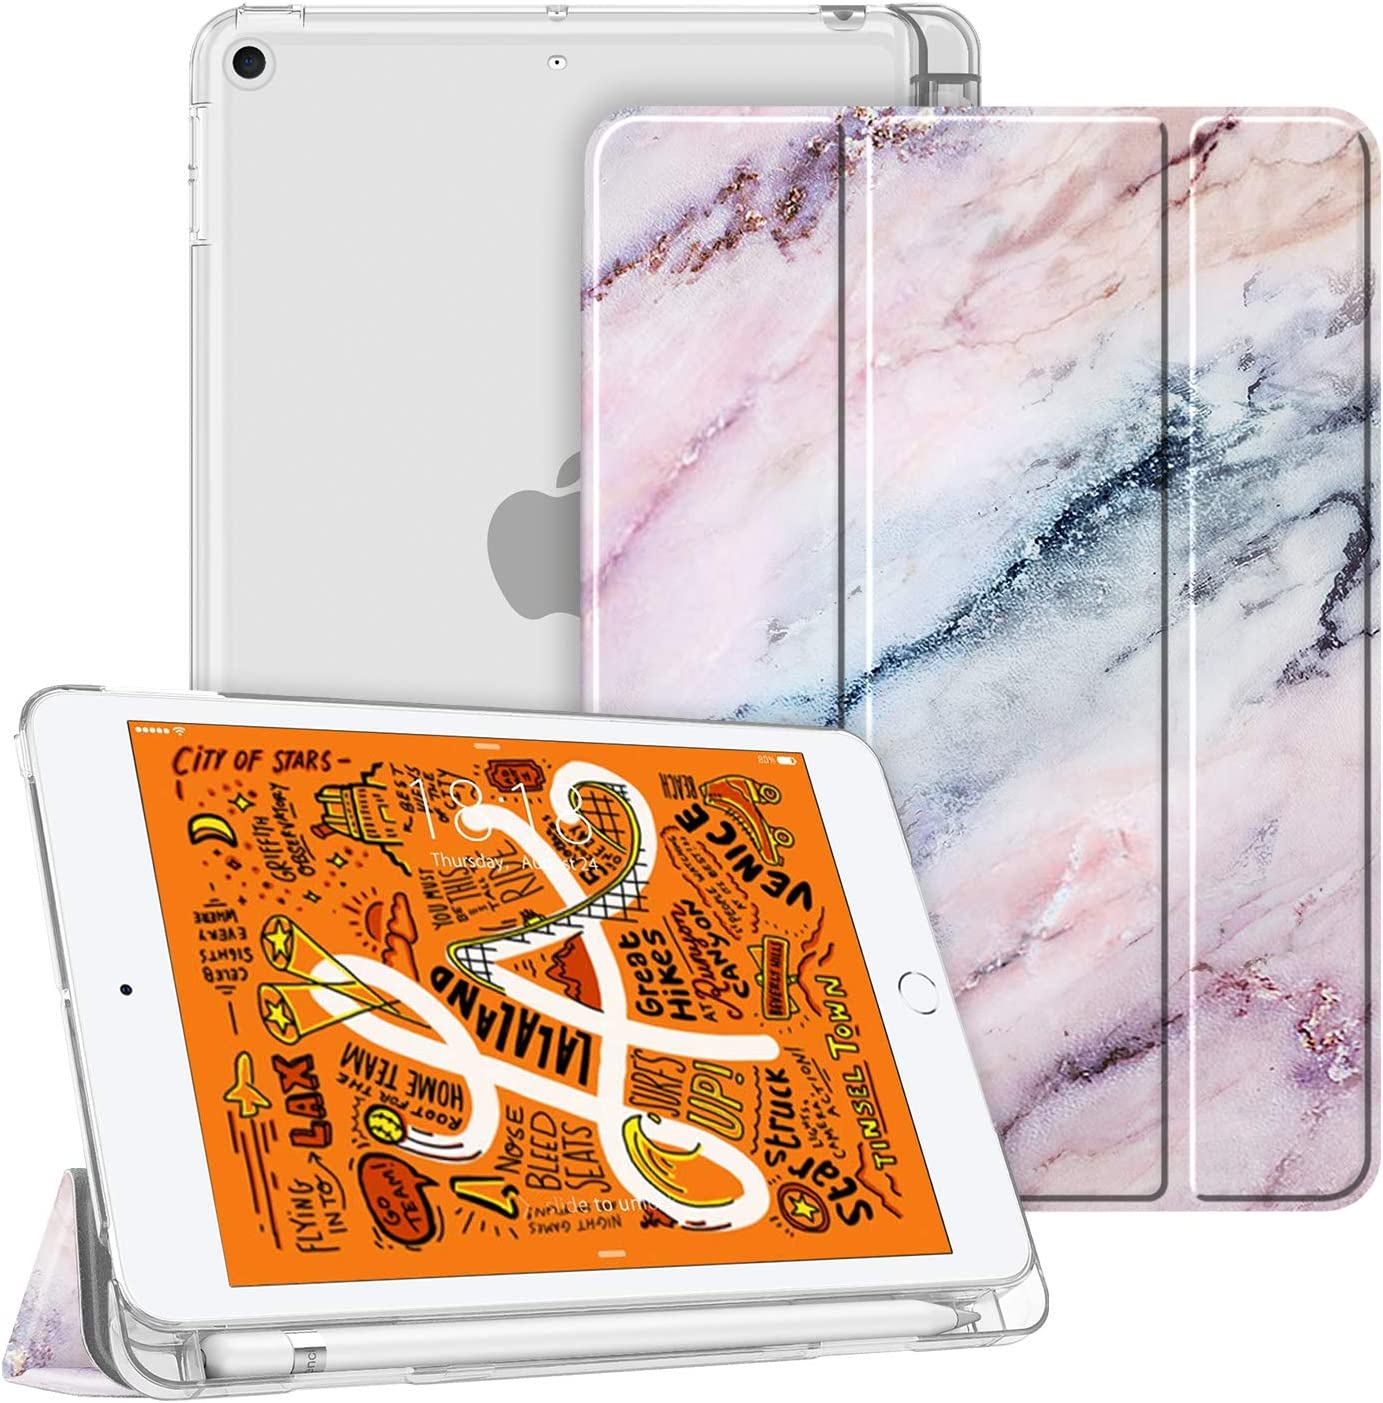 Fintie Case for iPad Mini 5 2019 - Lightweight Slim Shell Cover with Translucent Frosted Back Protector Supports Auto Wake/Sleep for iPad Mini 5th Generation 7.9 Inch, Marble Pink